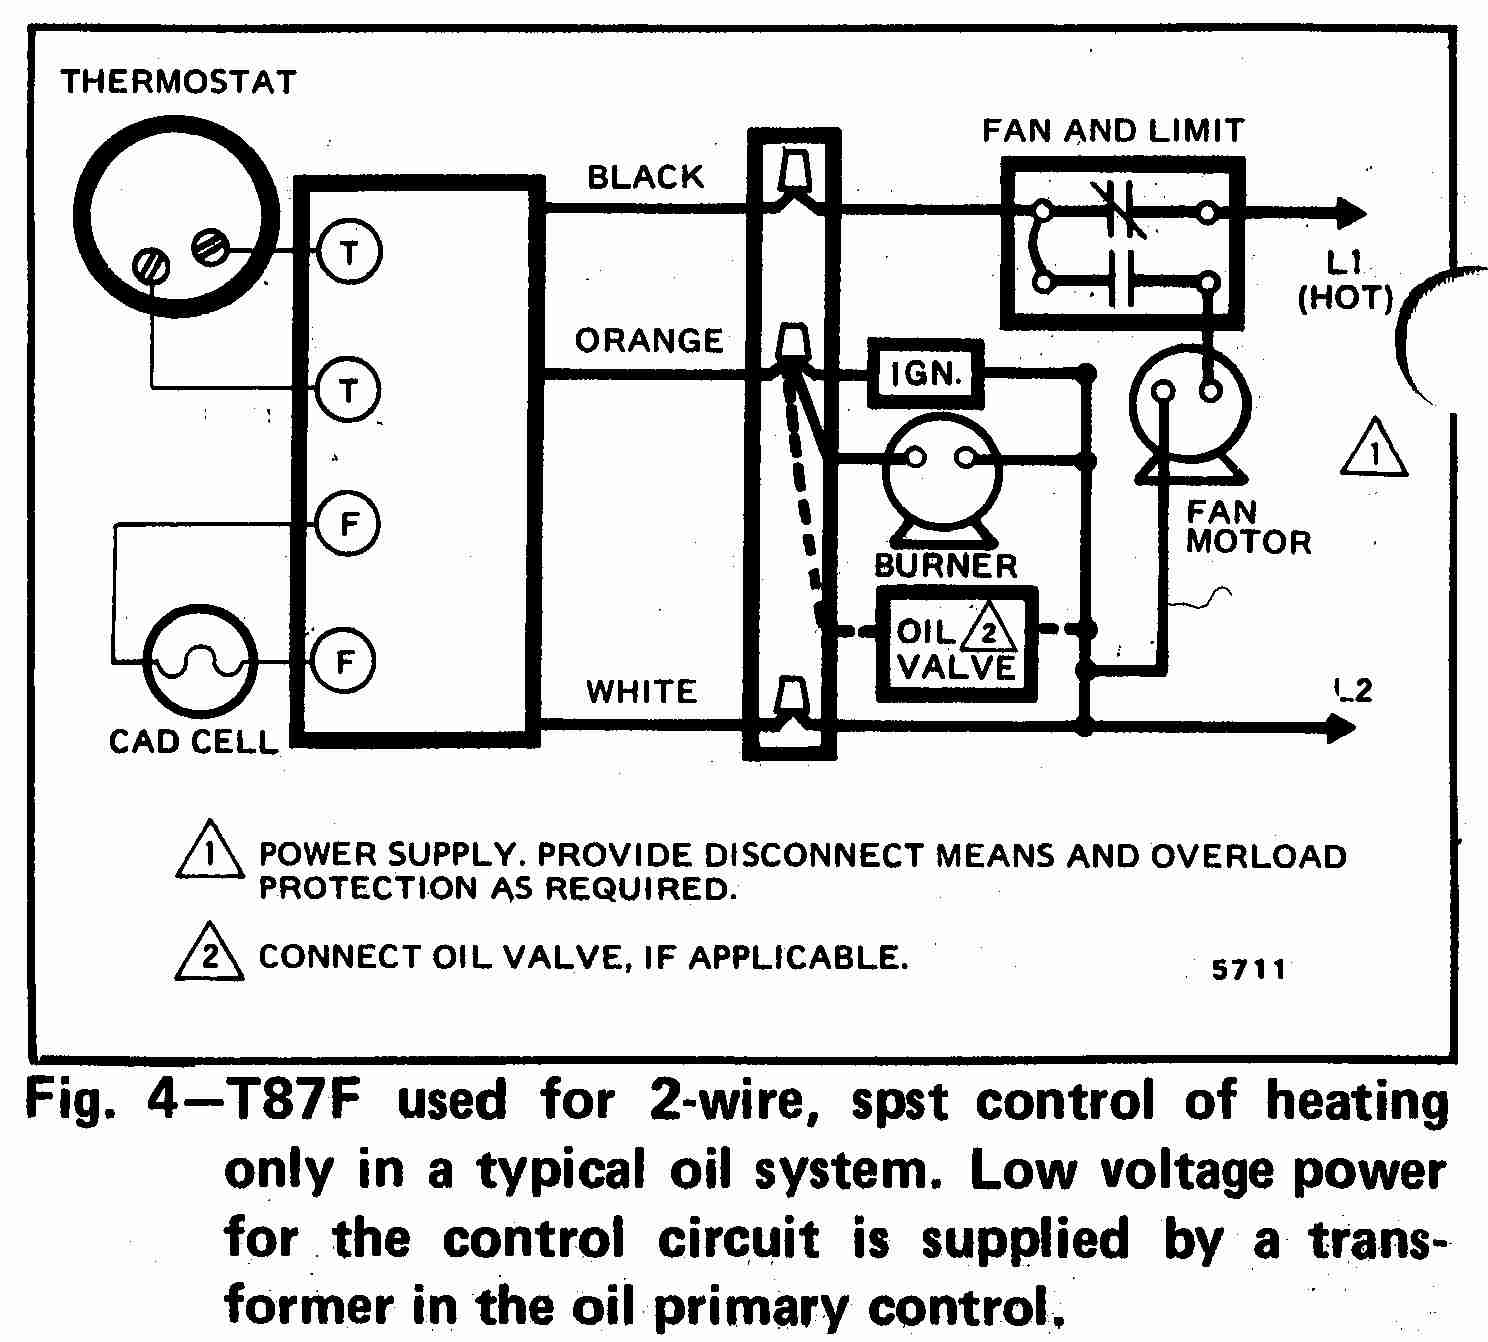 Furnace Wiring Diagram Besides Lennox Air Conditioner Wiring Diagram Furnace Wiring Diagram Besides Lennox Air Conditioner Wiring Diagram